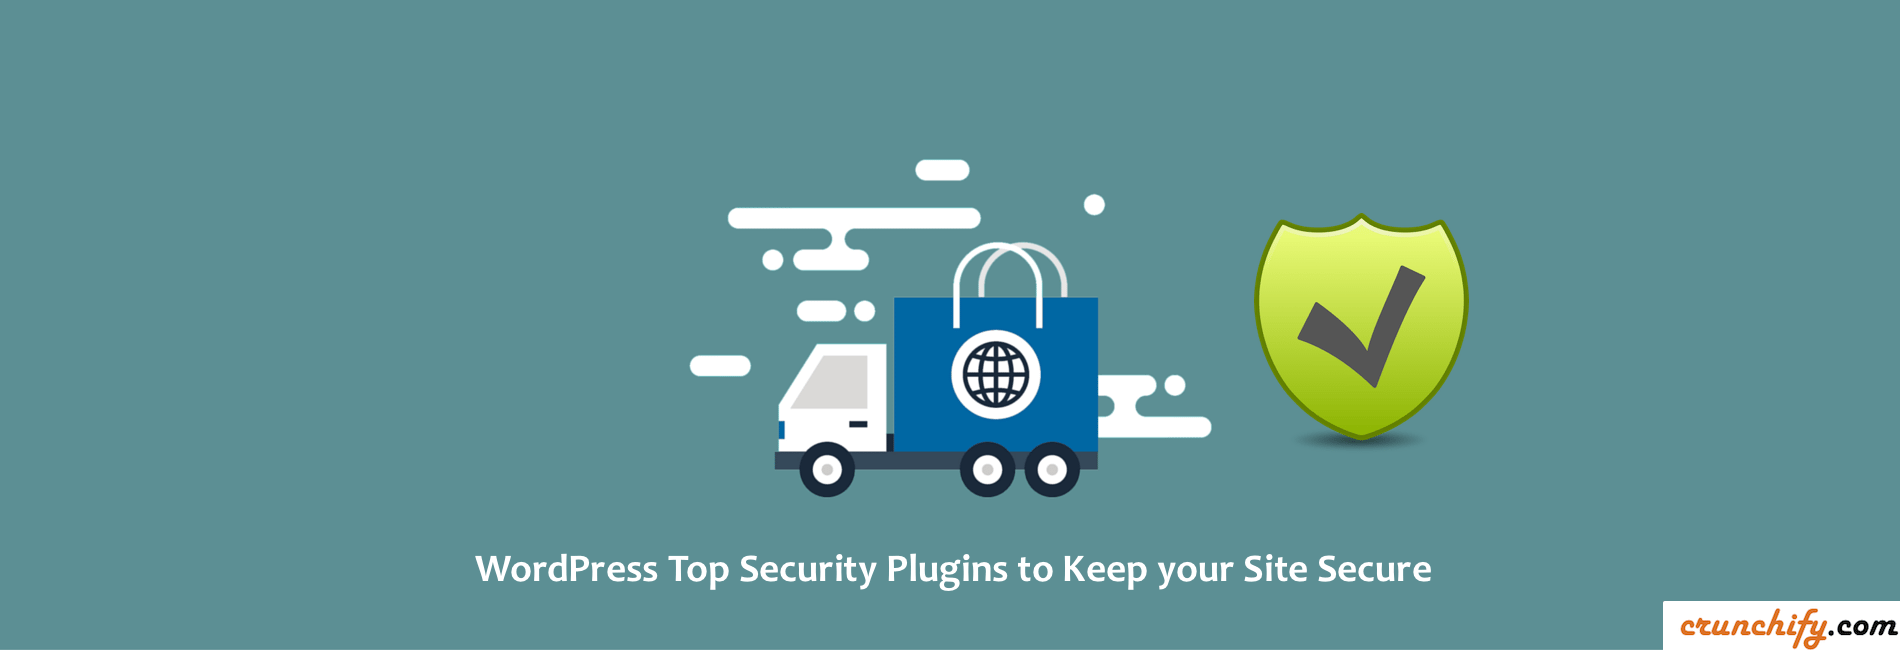 WordPress Top Security Plugins to Keep your Site Secure